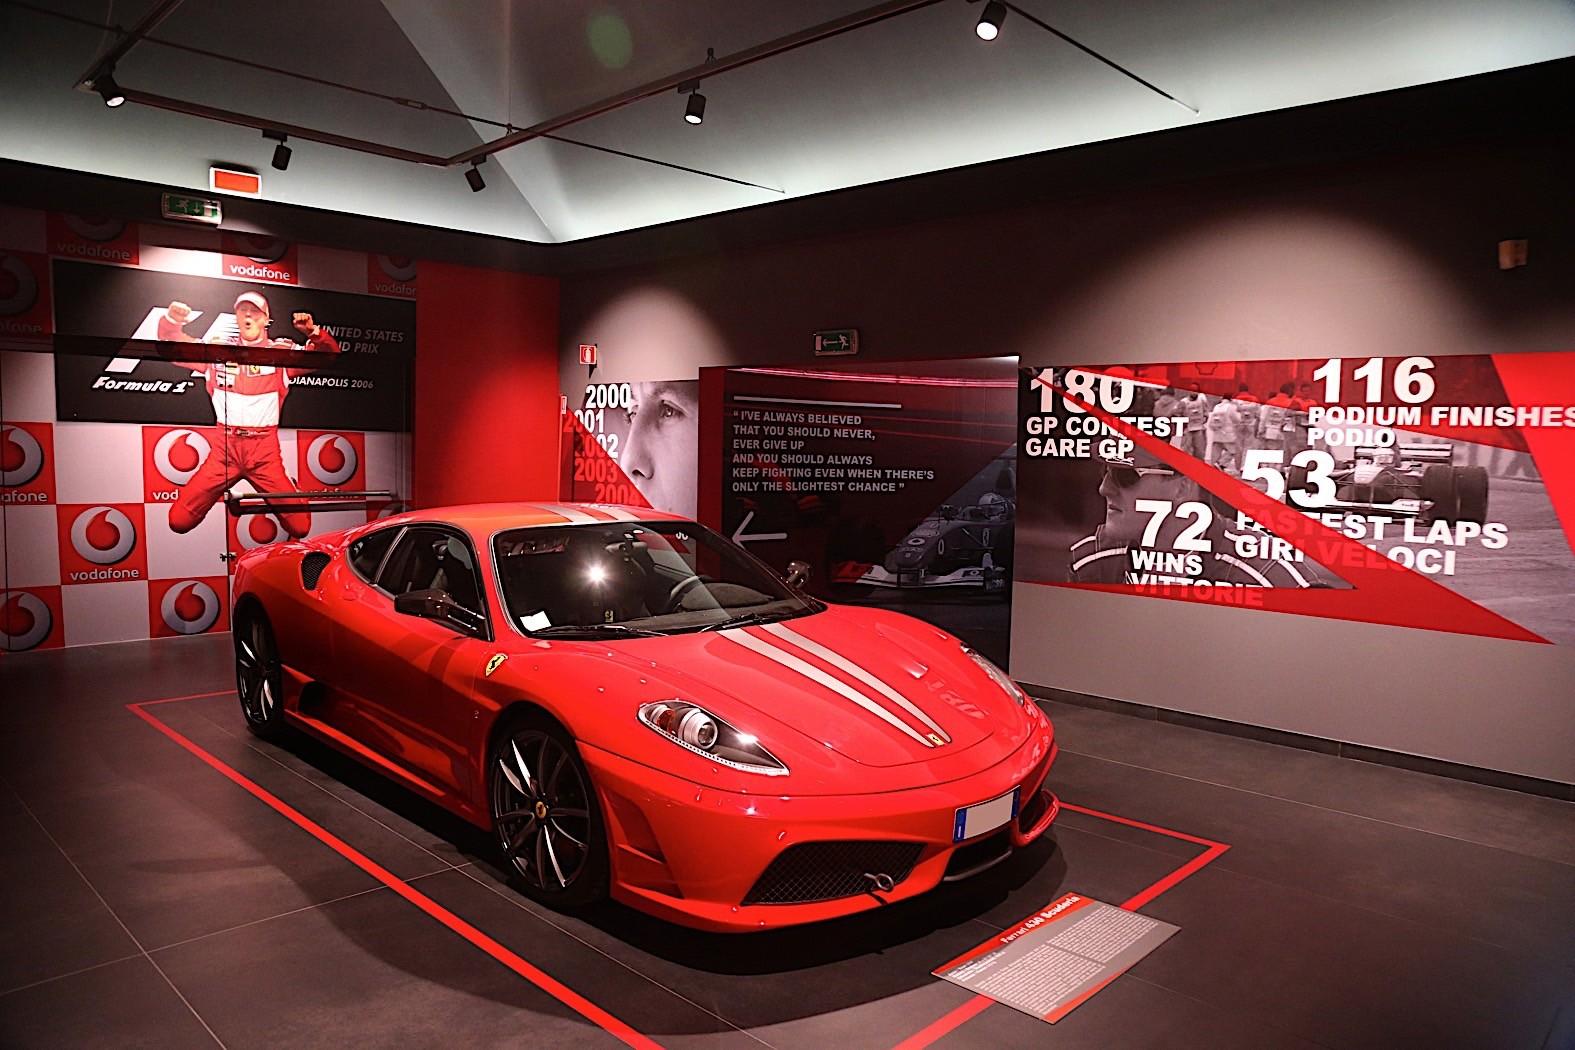 Michael 50 exhibit at the Ferrari museum